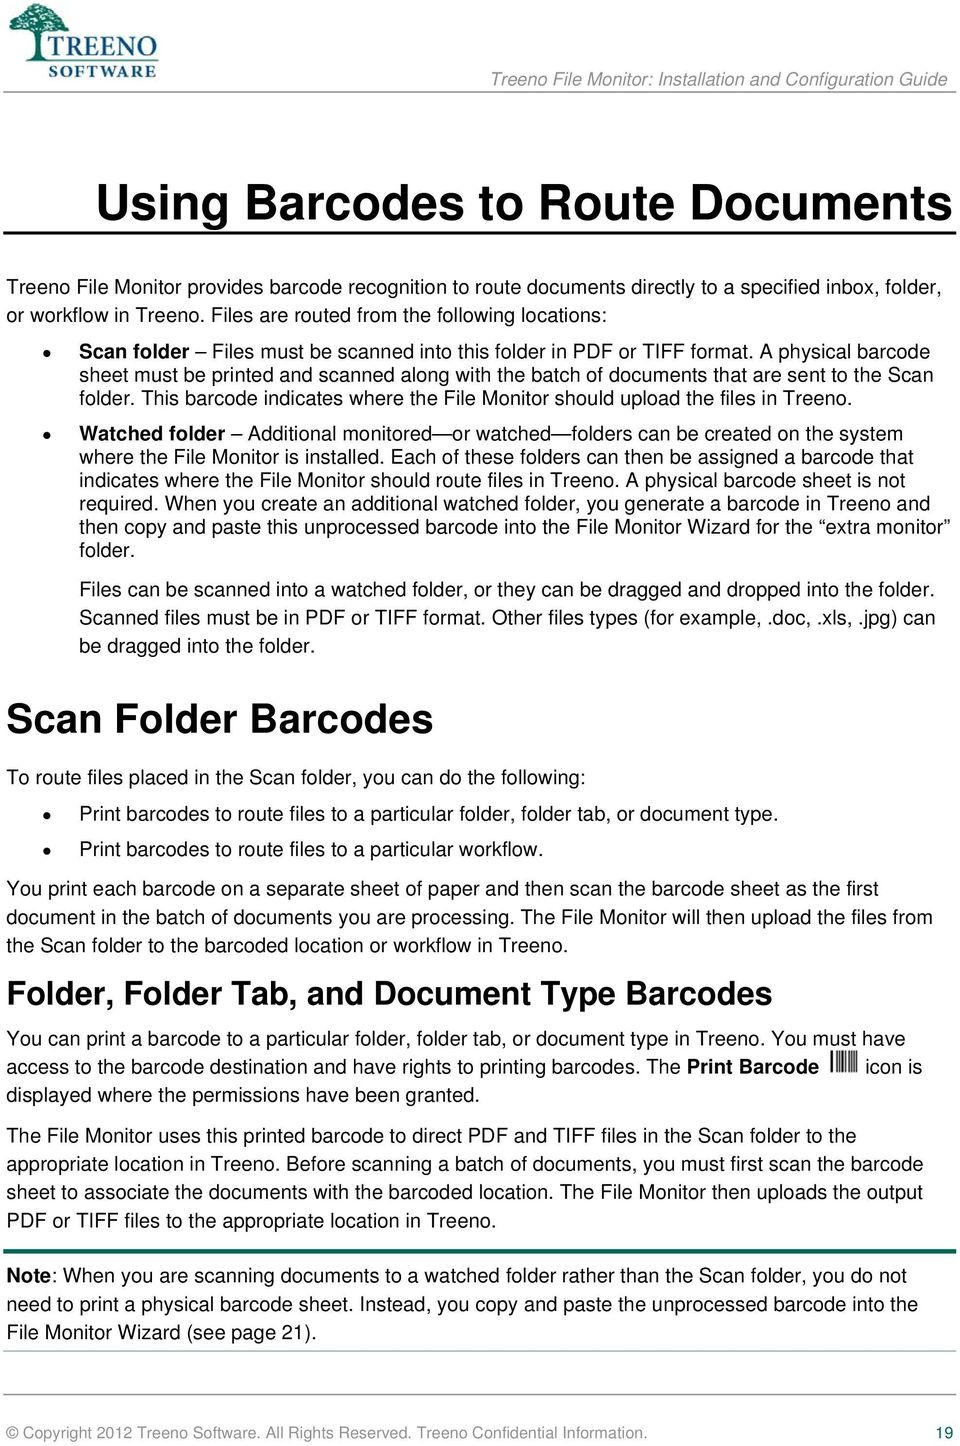 A physical barcode sheet must be printed and scanned along with the batch of documents that are sent to the Scan folder.